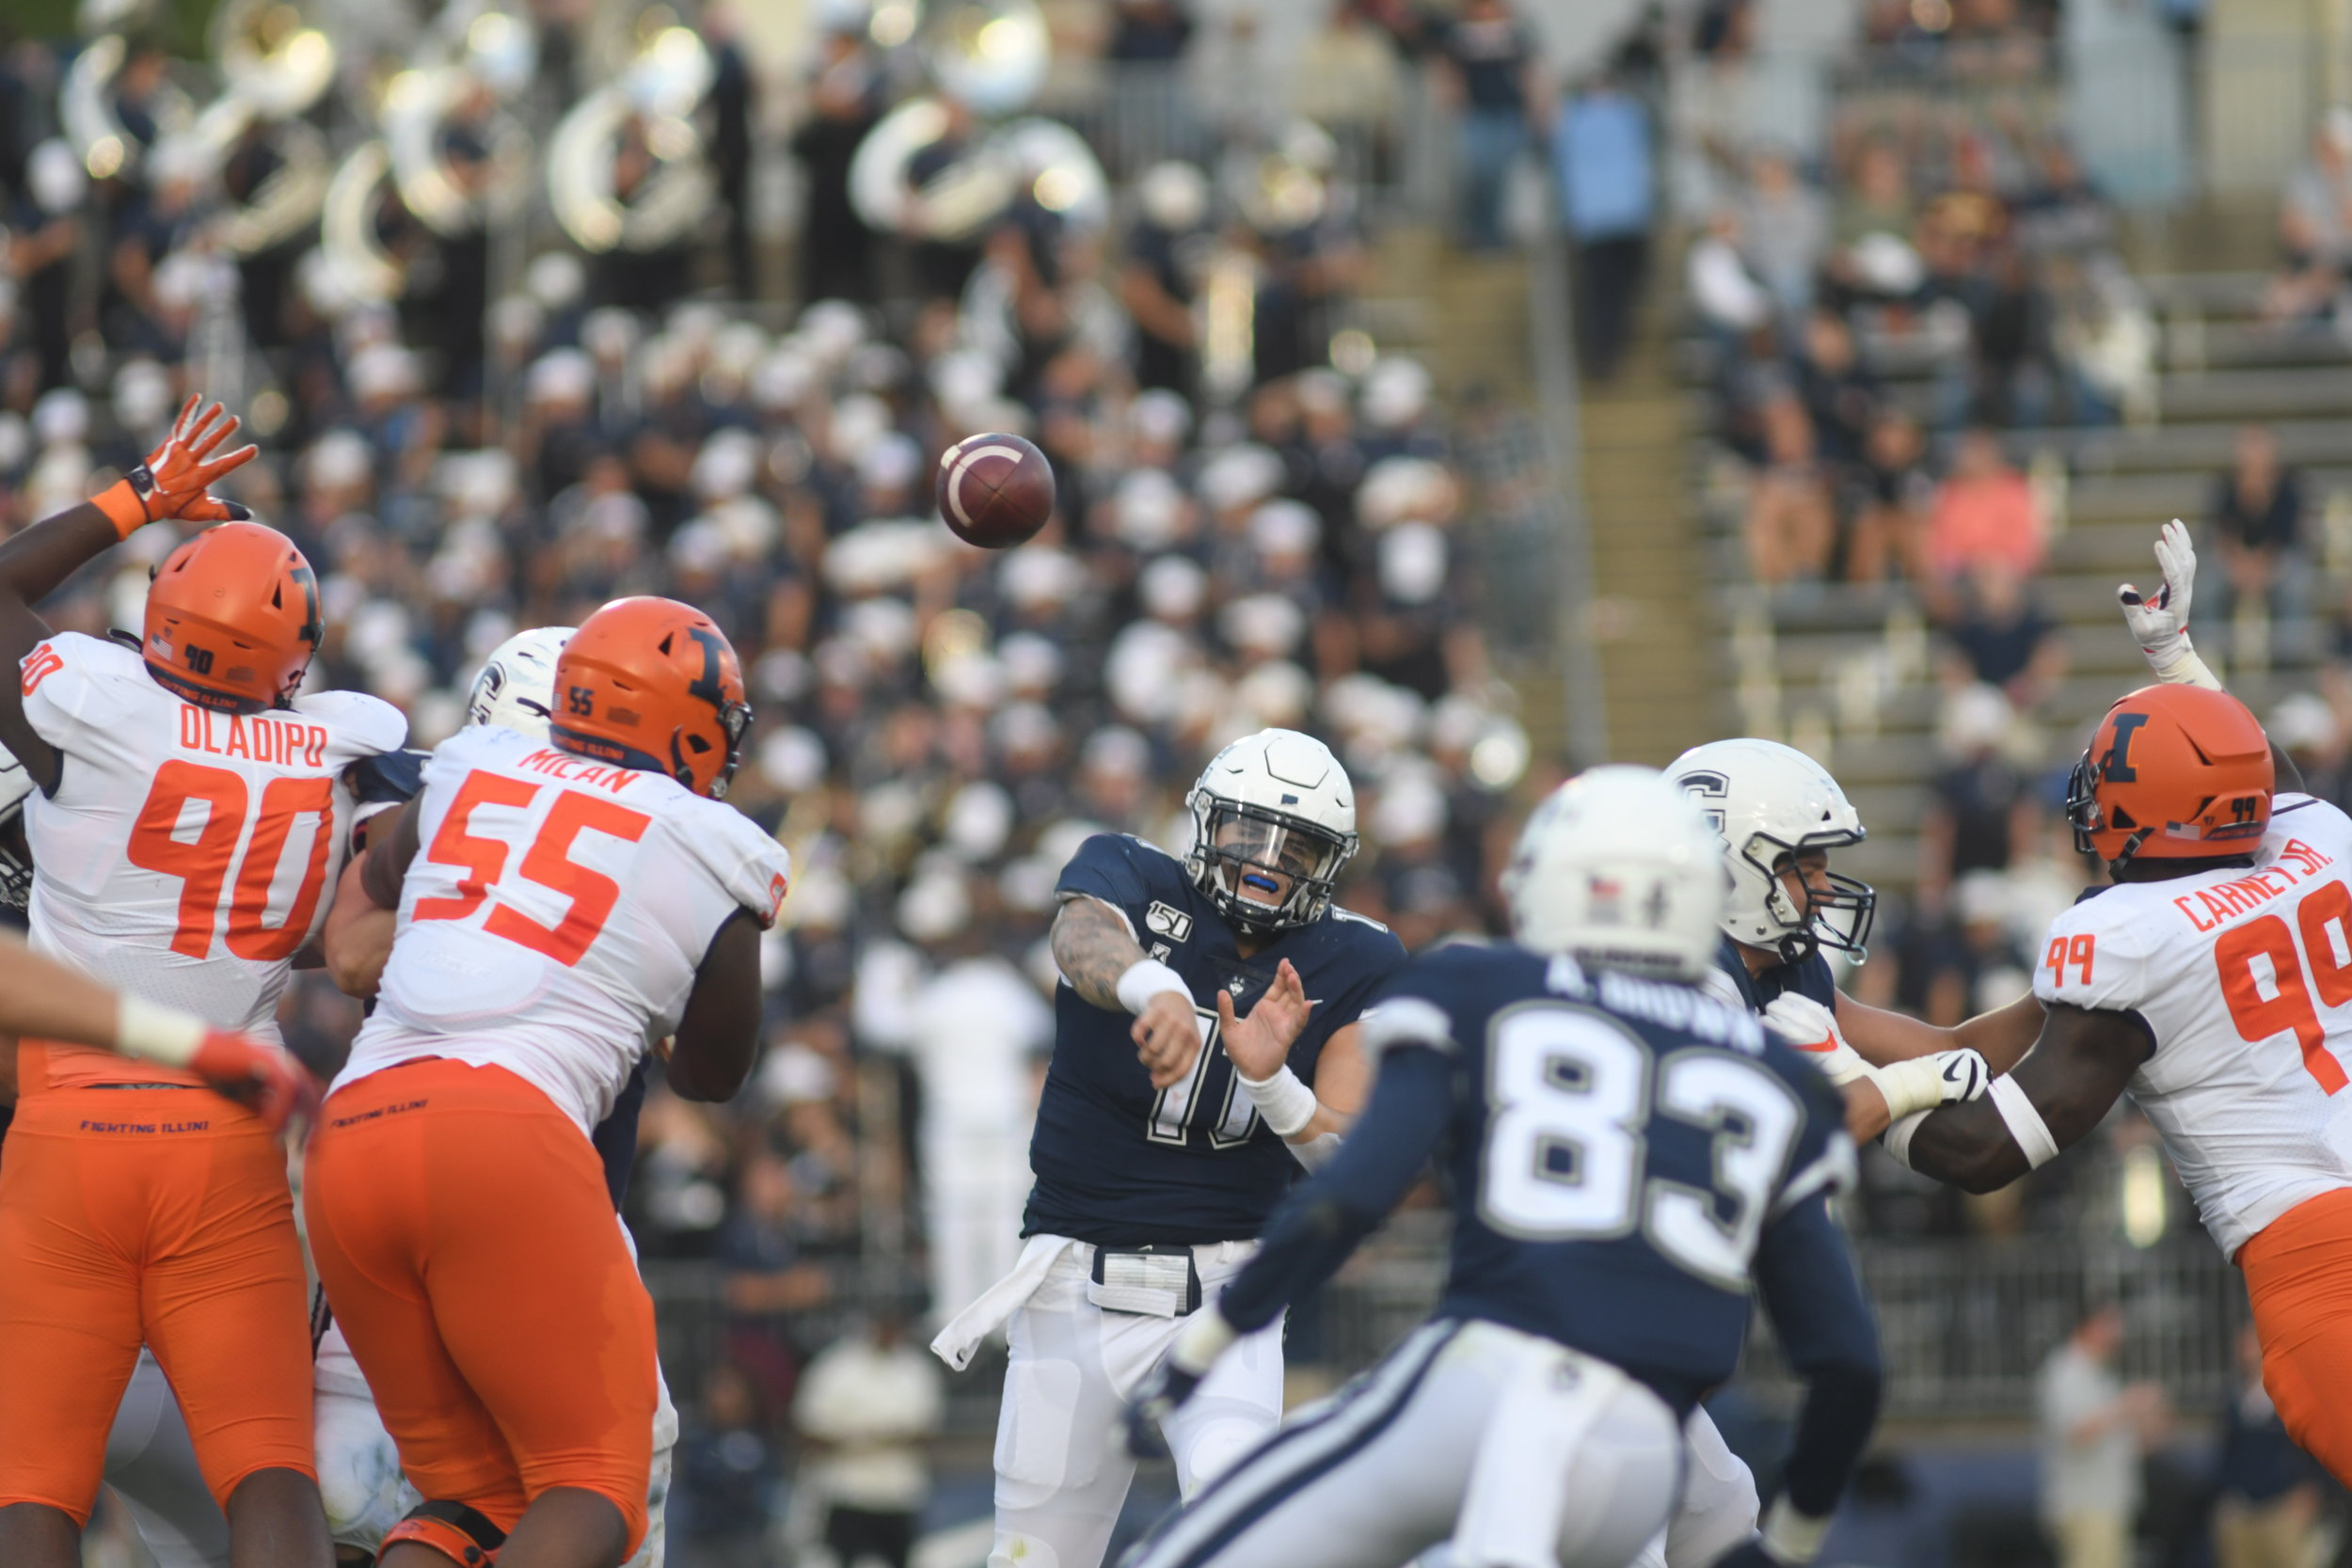 UConn lost 23-31 to the University of Illinois on Saturday, September 7.  Photo by Eric Wang, Senior Staff Photographer / The Daily Campus